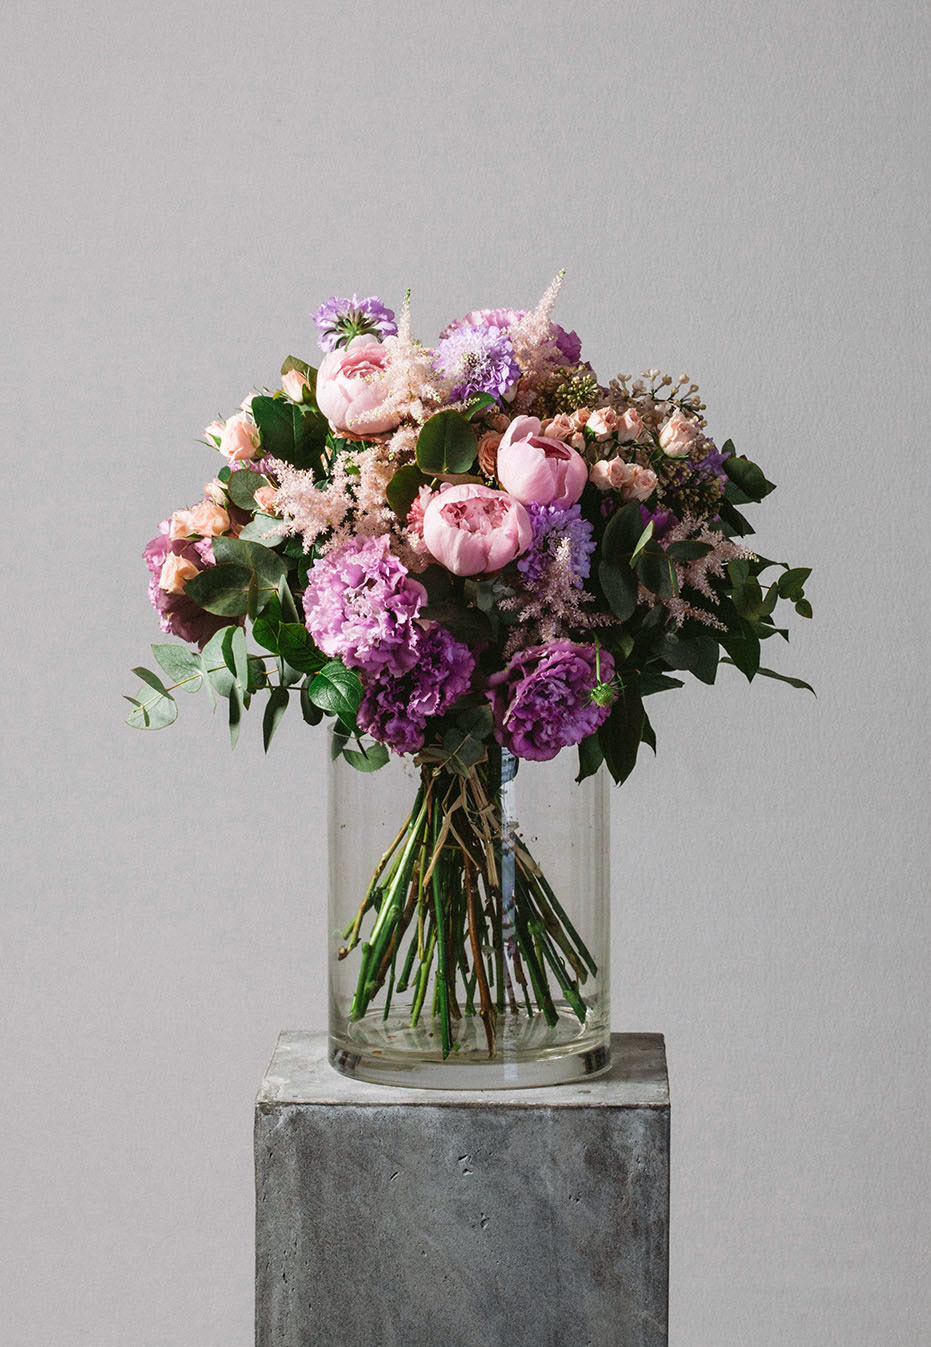 flower bouquet of peony and astilbe by flannel flowers